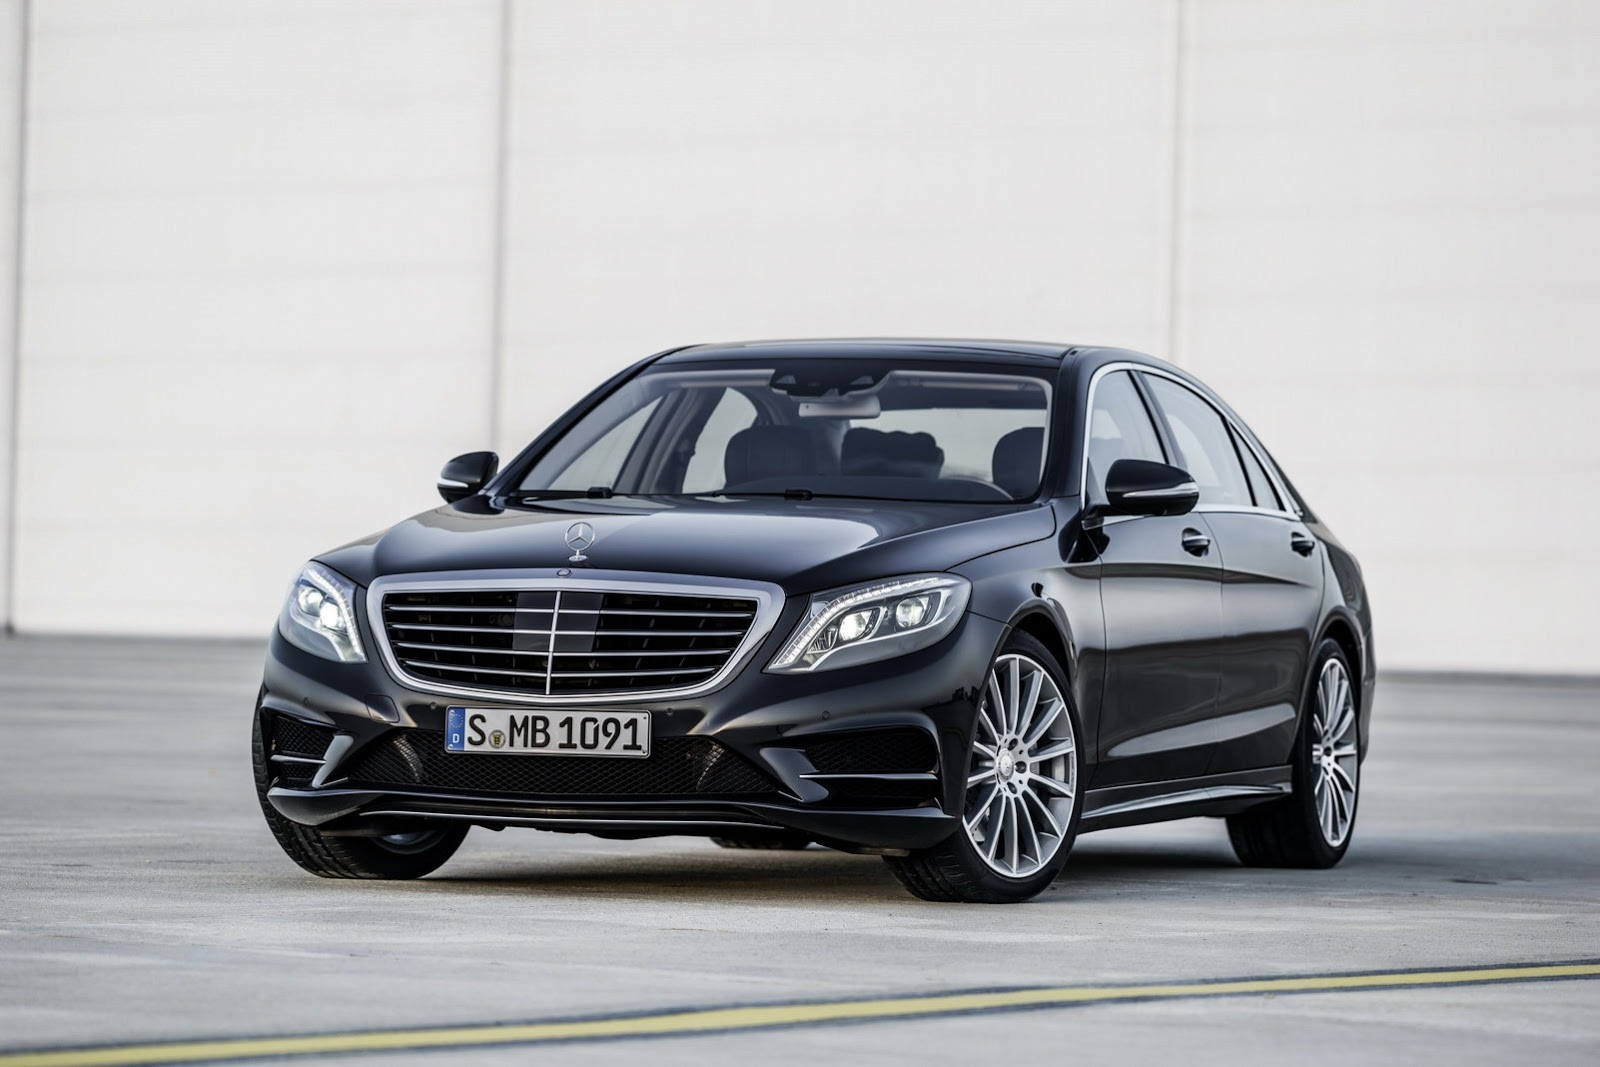 2014 Mercedes Benz S-Class - SMADE MEDIA (55)